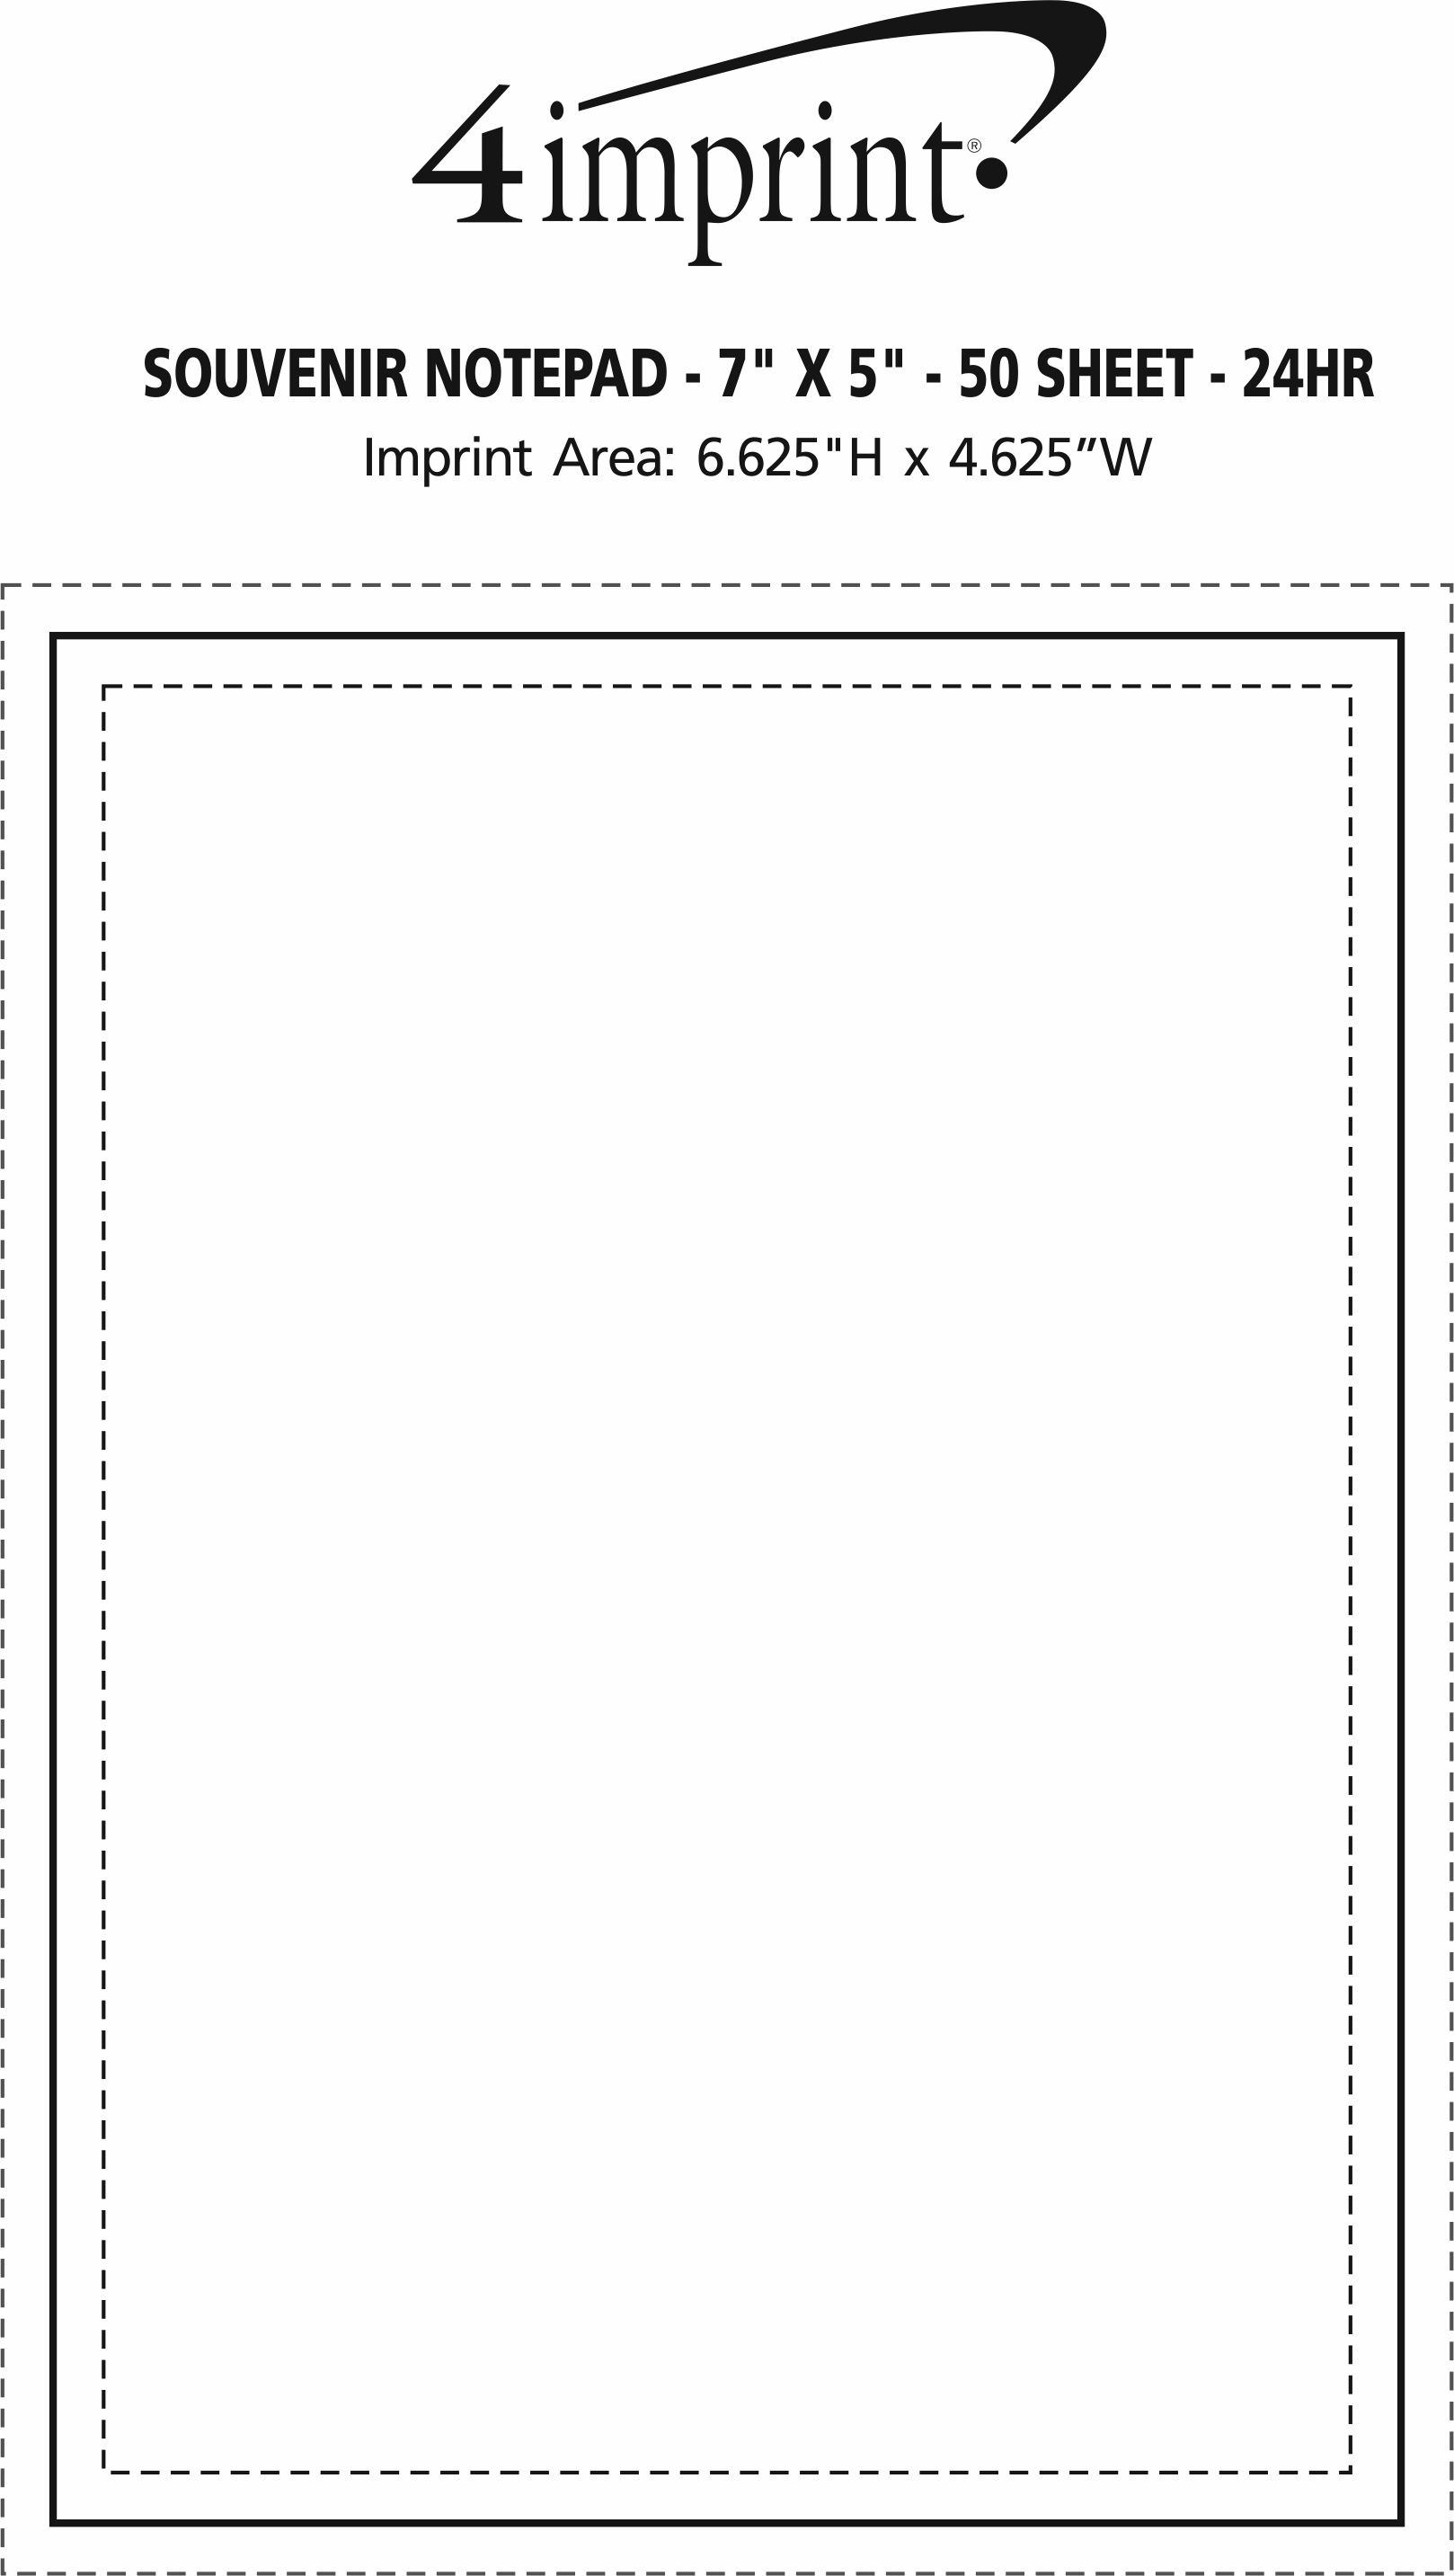 """Imprint Area of Bic Non-Adhesive Notepad - 7"""" x 5"""" - 50 Sheet - 24 hr"""